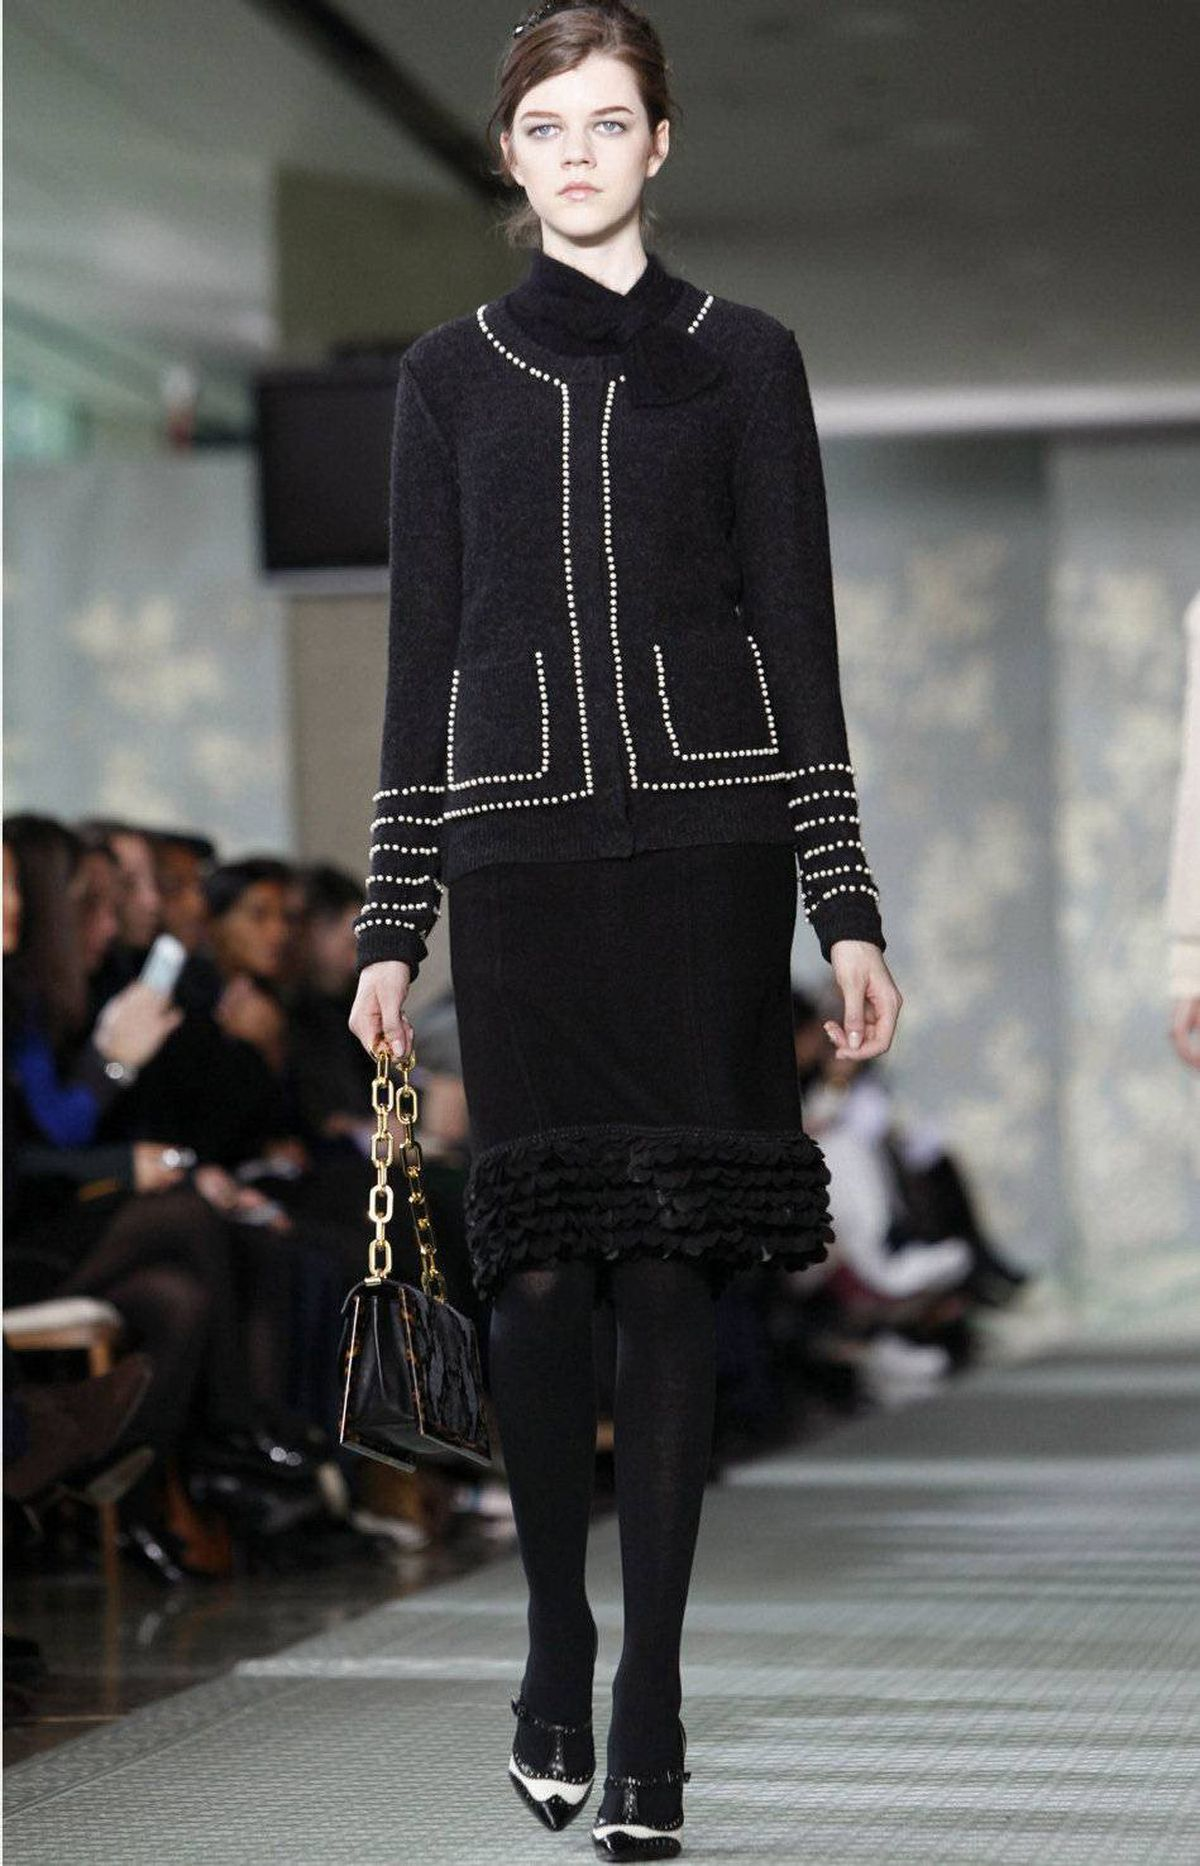 """On Tuesday morning, Tory Burch showed a collection inspired by a """"prim girl who's under the spell of the wrong kind of guy,"""" according to the program notes. """"She's an innocent, unaware of her own sex appeal."""""""